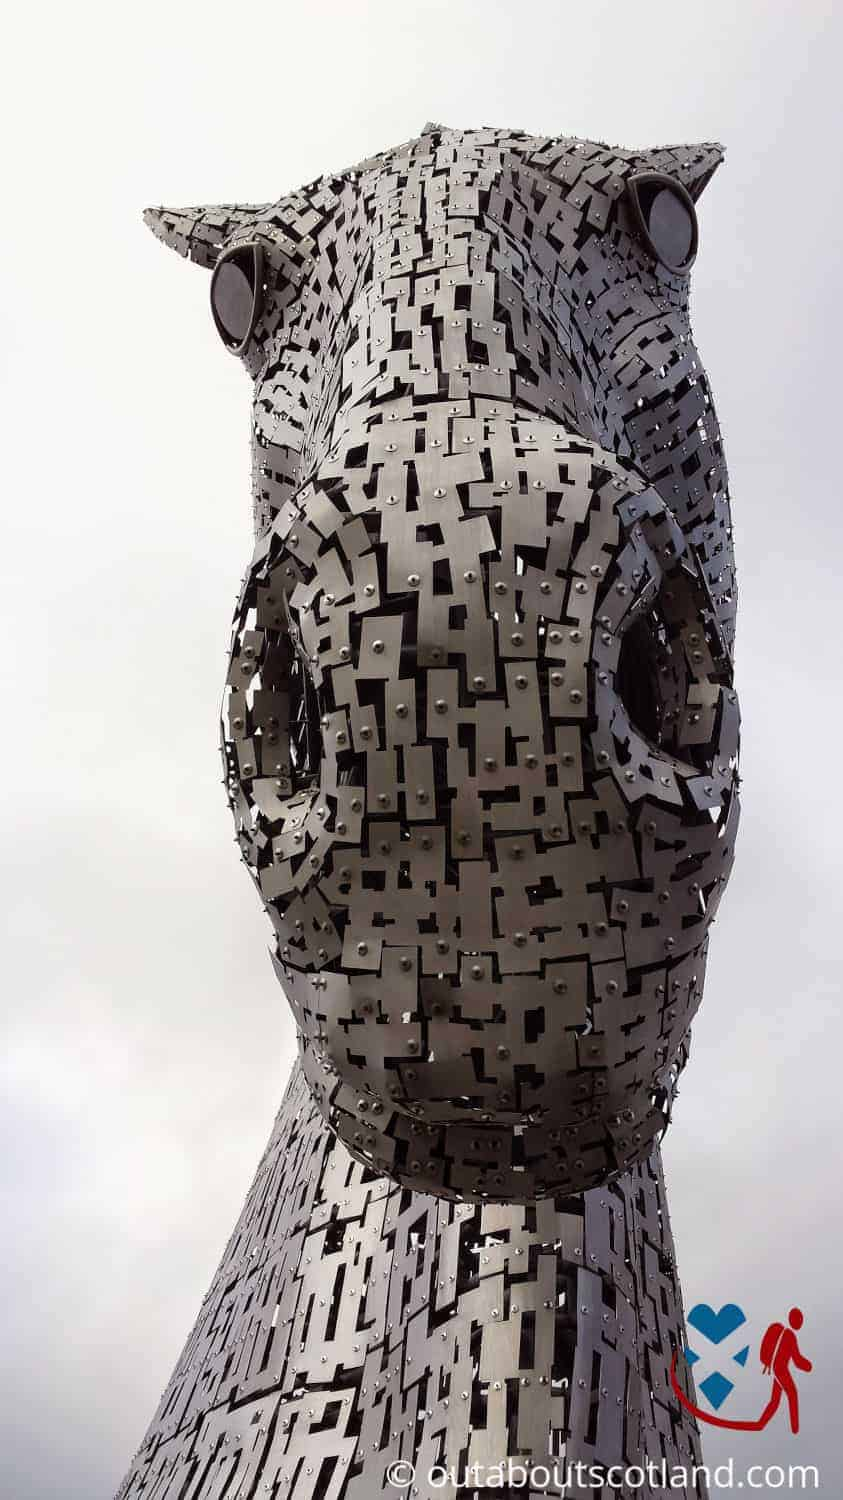 The Kelpies (4 of 6)